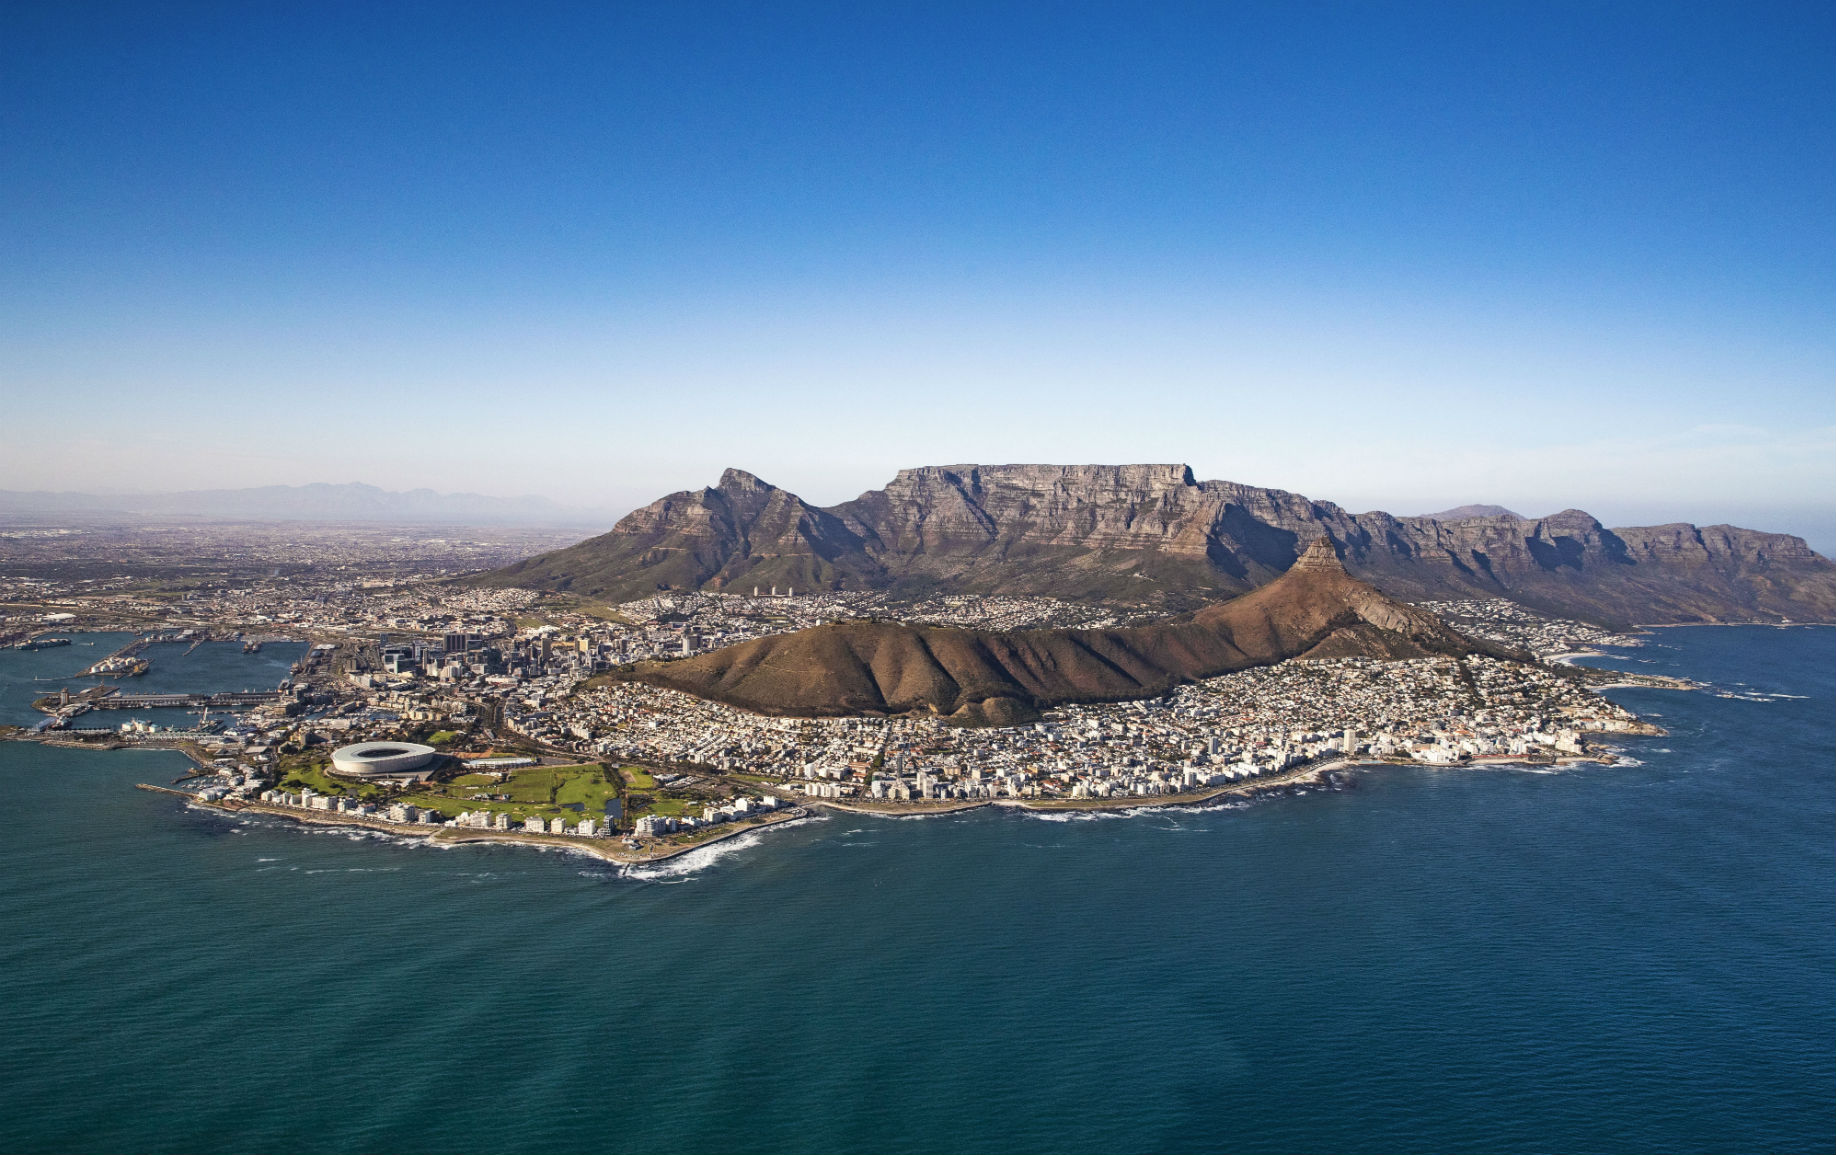 The one and only of Cape Town